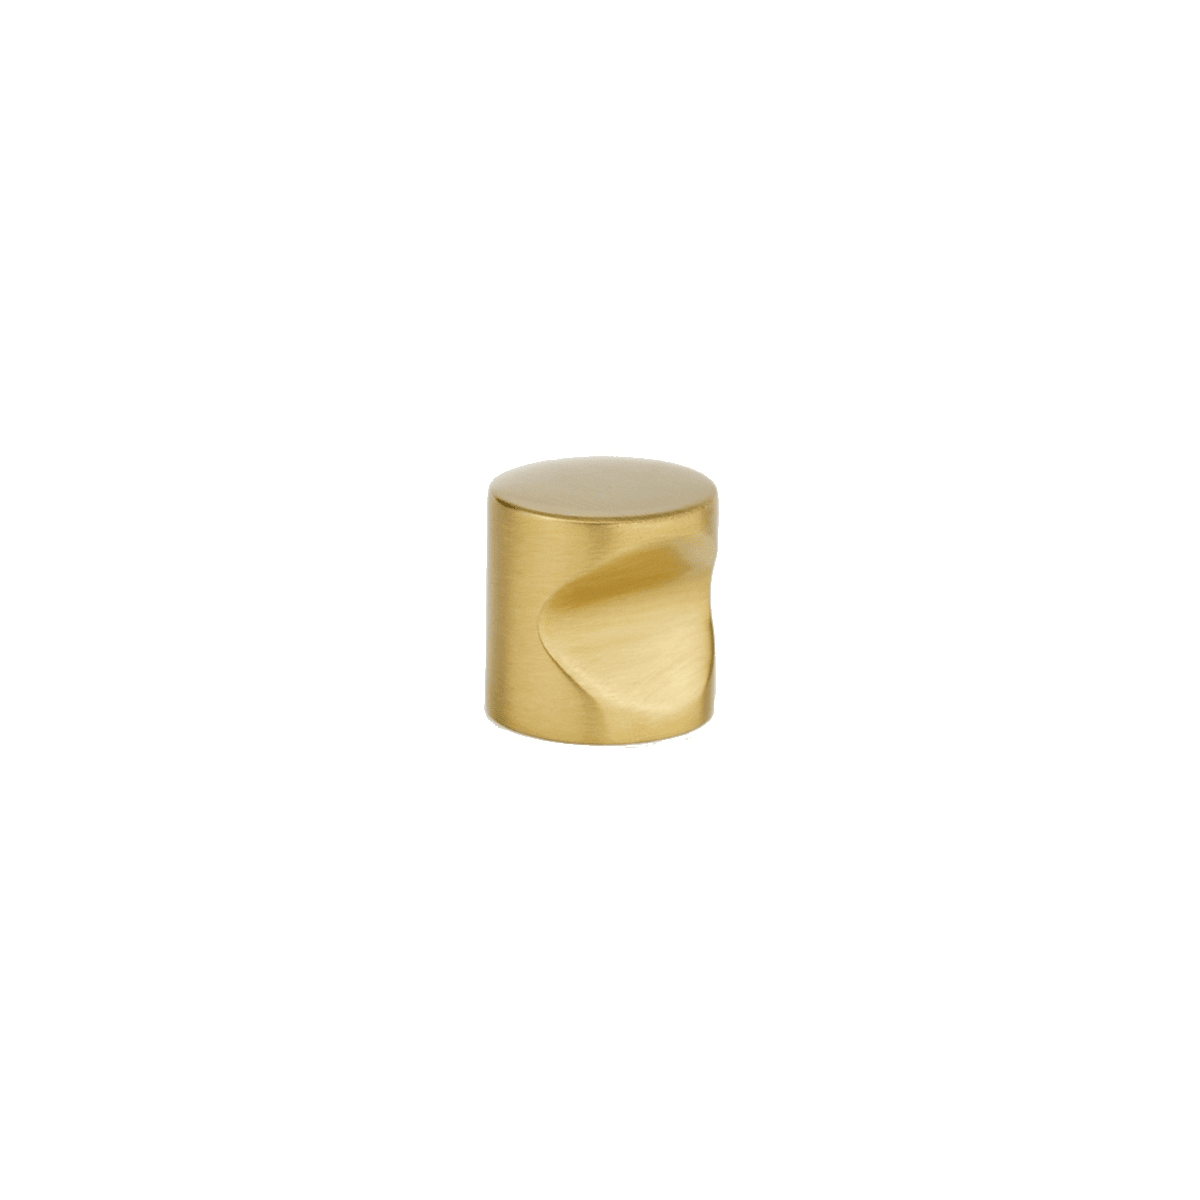 Alno Contemporary I 3/4 Inch Cylindrical Cabinet Knob